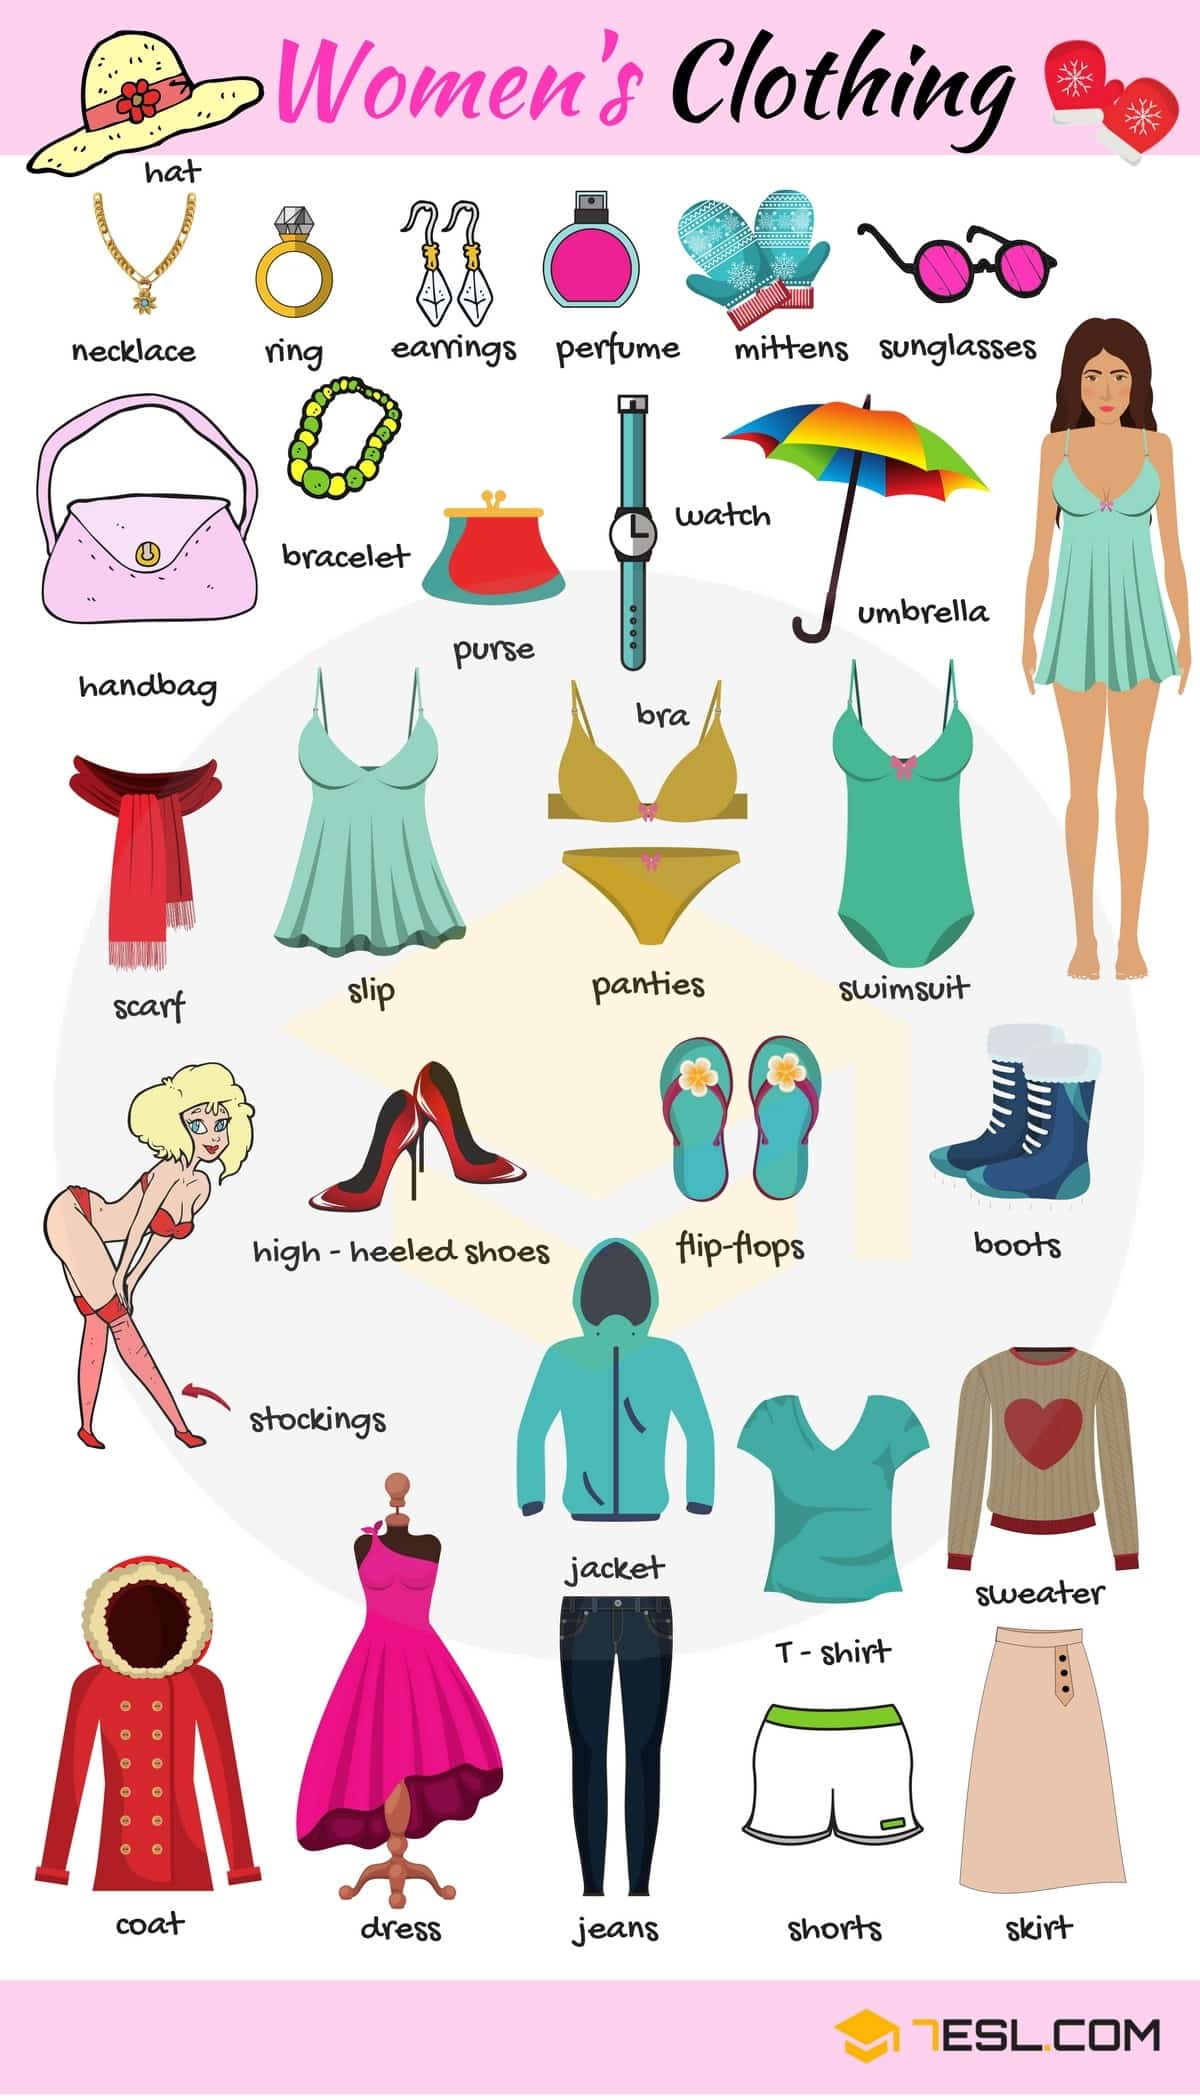 Women's Clothing Vocabulary | Images